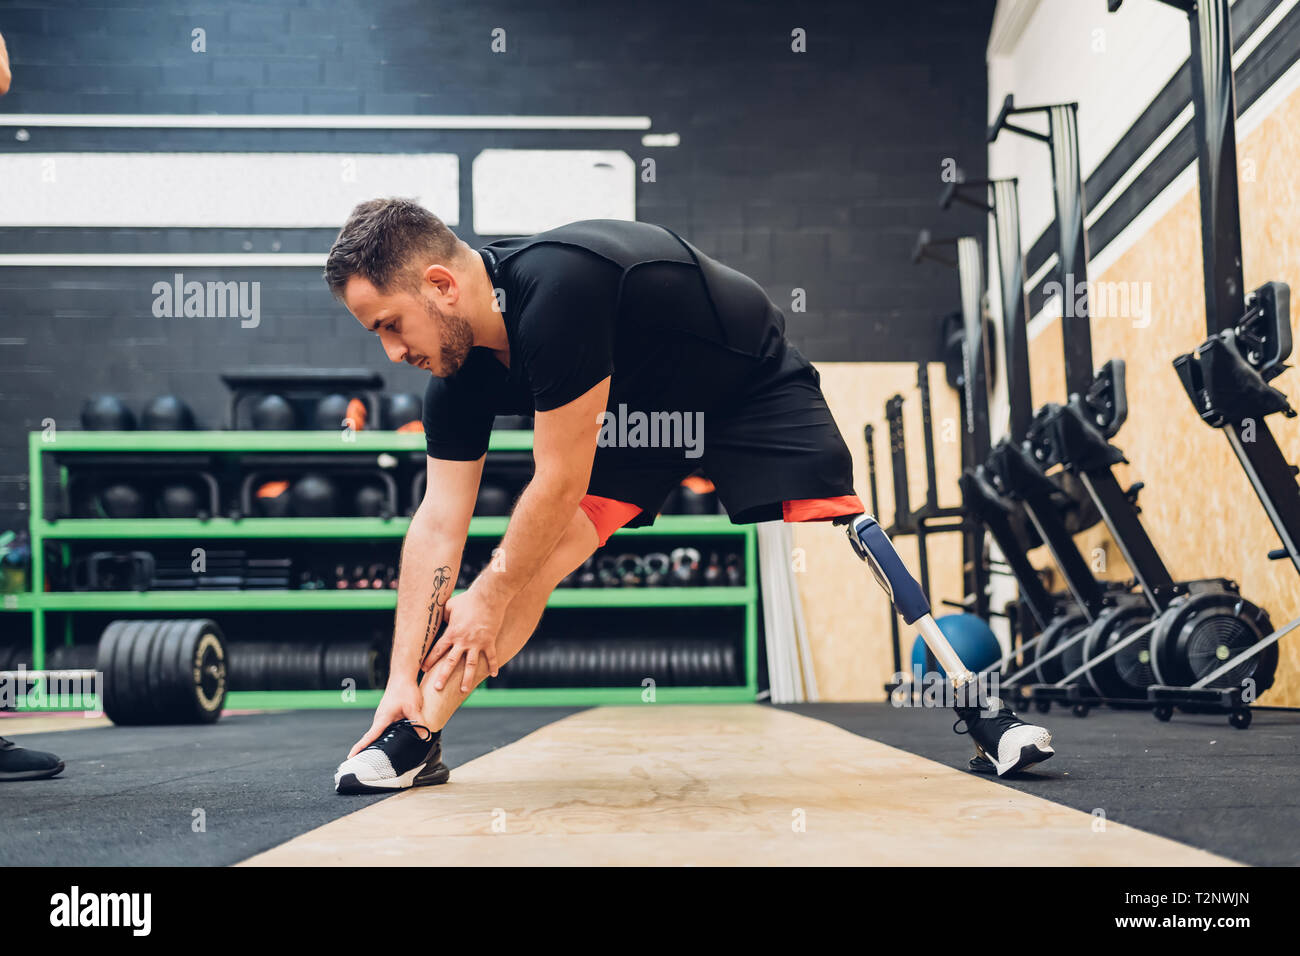 Man with prosthetic leg stretching in gym Stock Photo